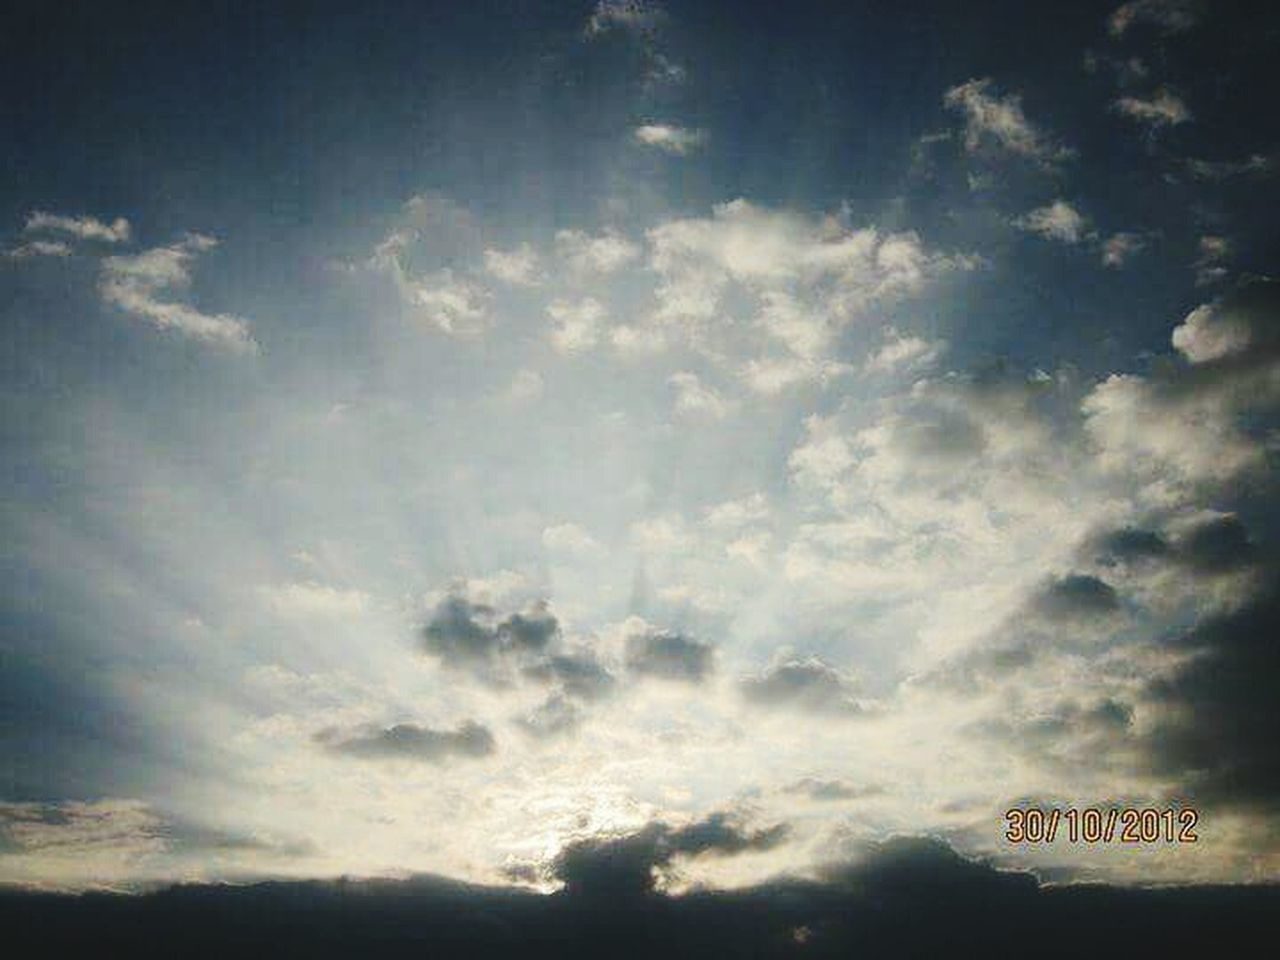 cloud - sky, sky, cloudscape, backgrounds, outdoors, sky only, day, multi colored, no people, scenics, nature, beauty in nature